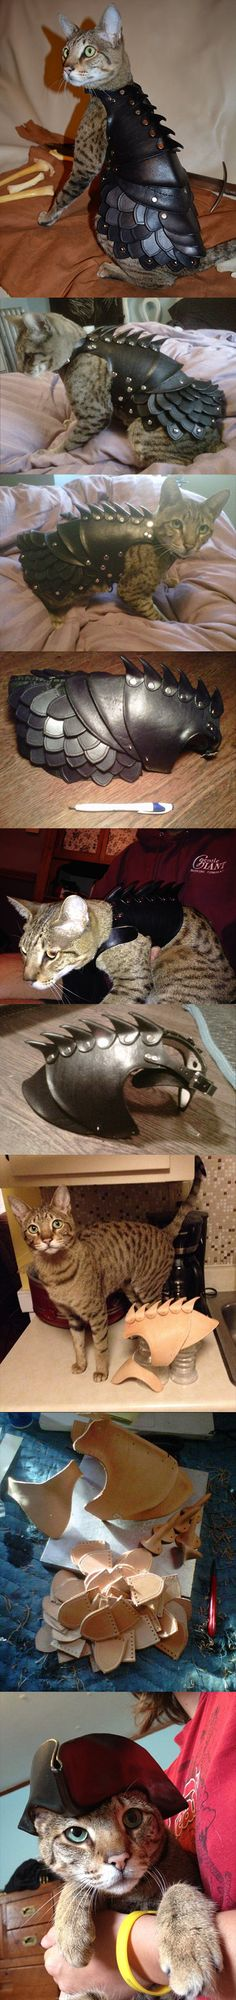 """You gotta love crazy cat people, if only for the entertainment value. You're looking at a handmade $500 Cat Battle Armor by an internet who goes by the name of """"schnabuble"""".                                                                                                                                                                                 More"""